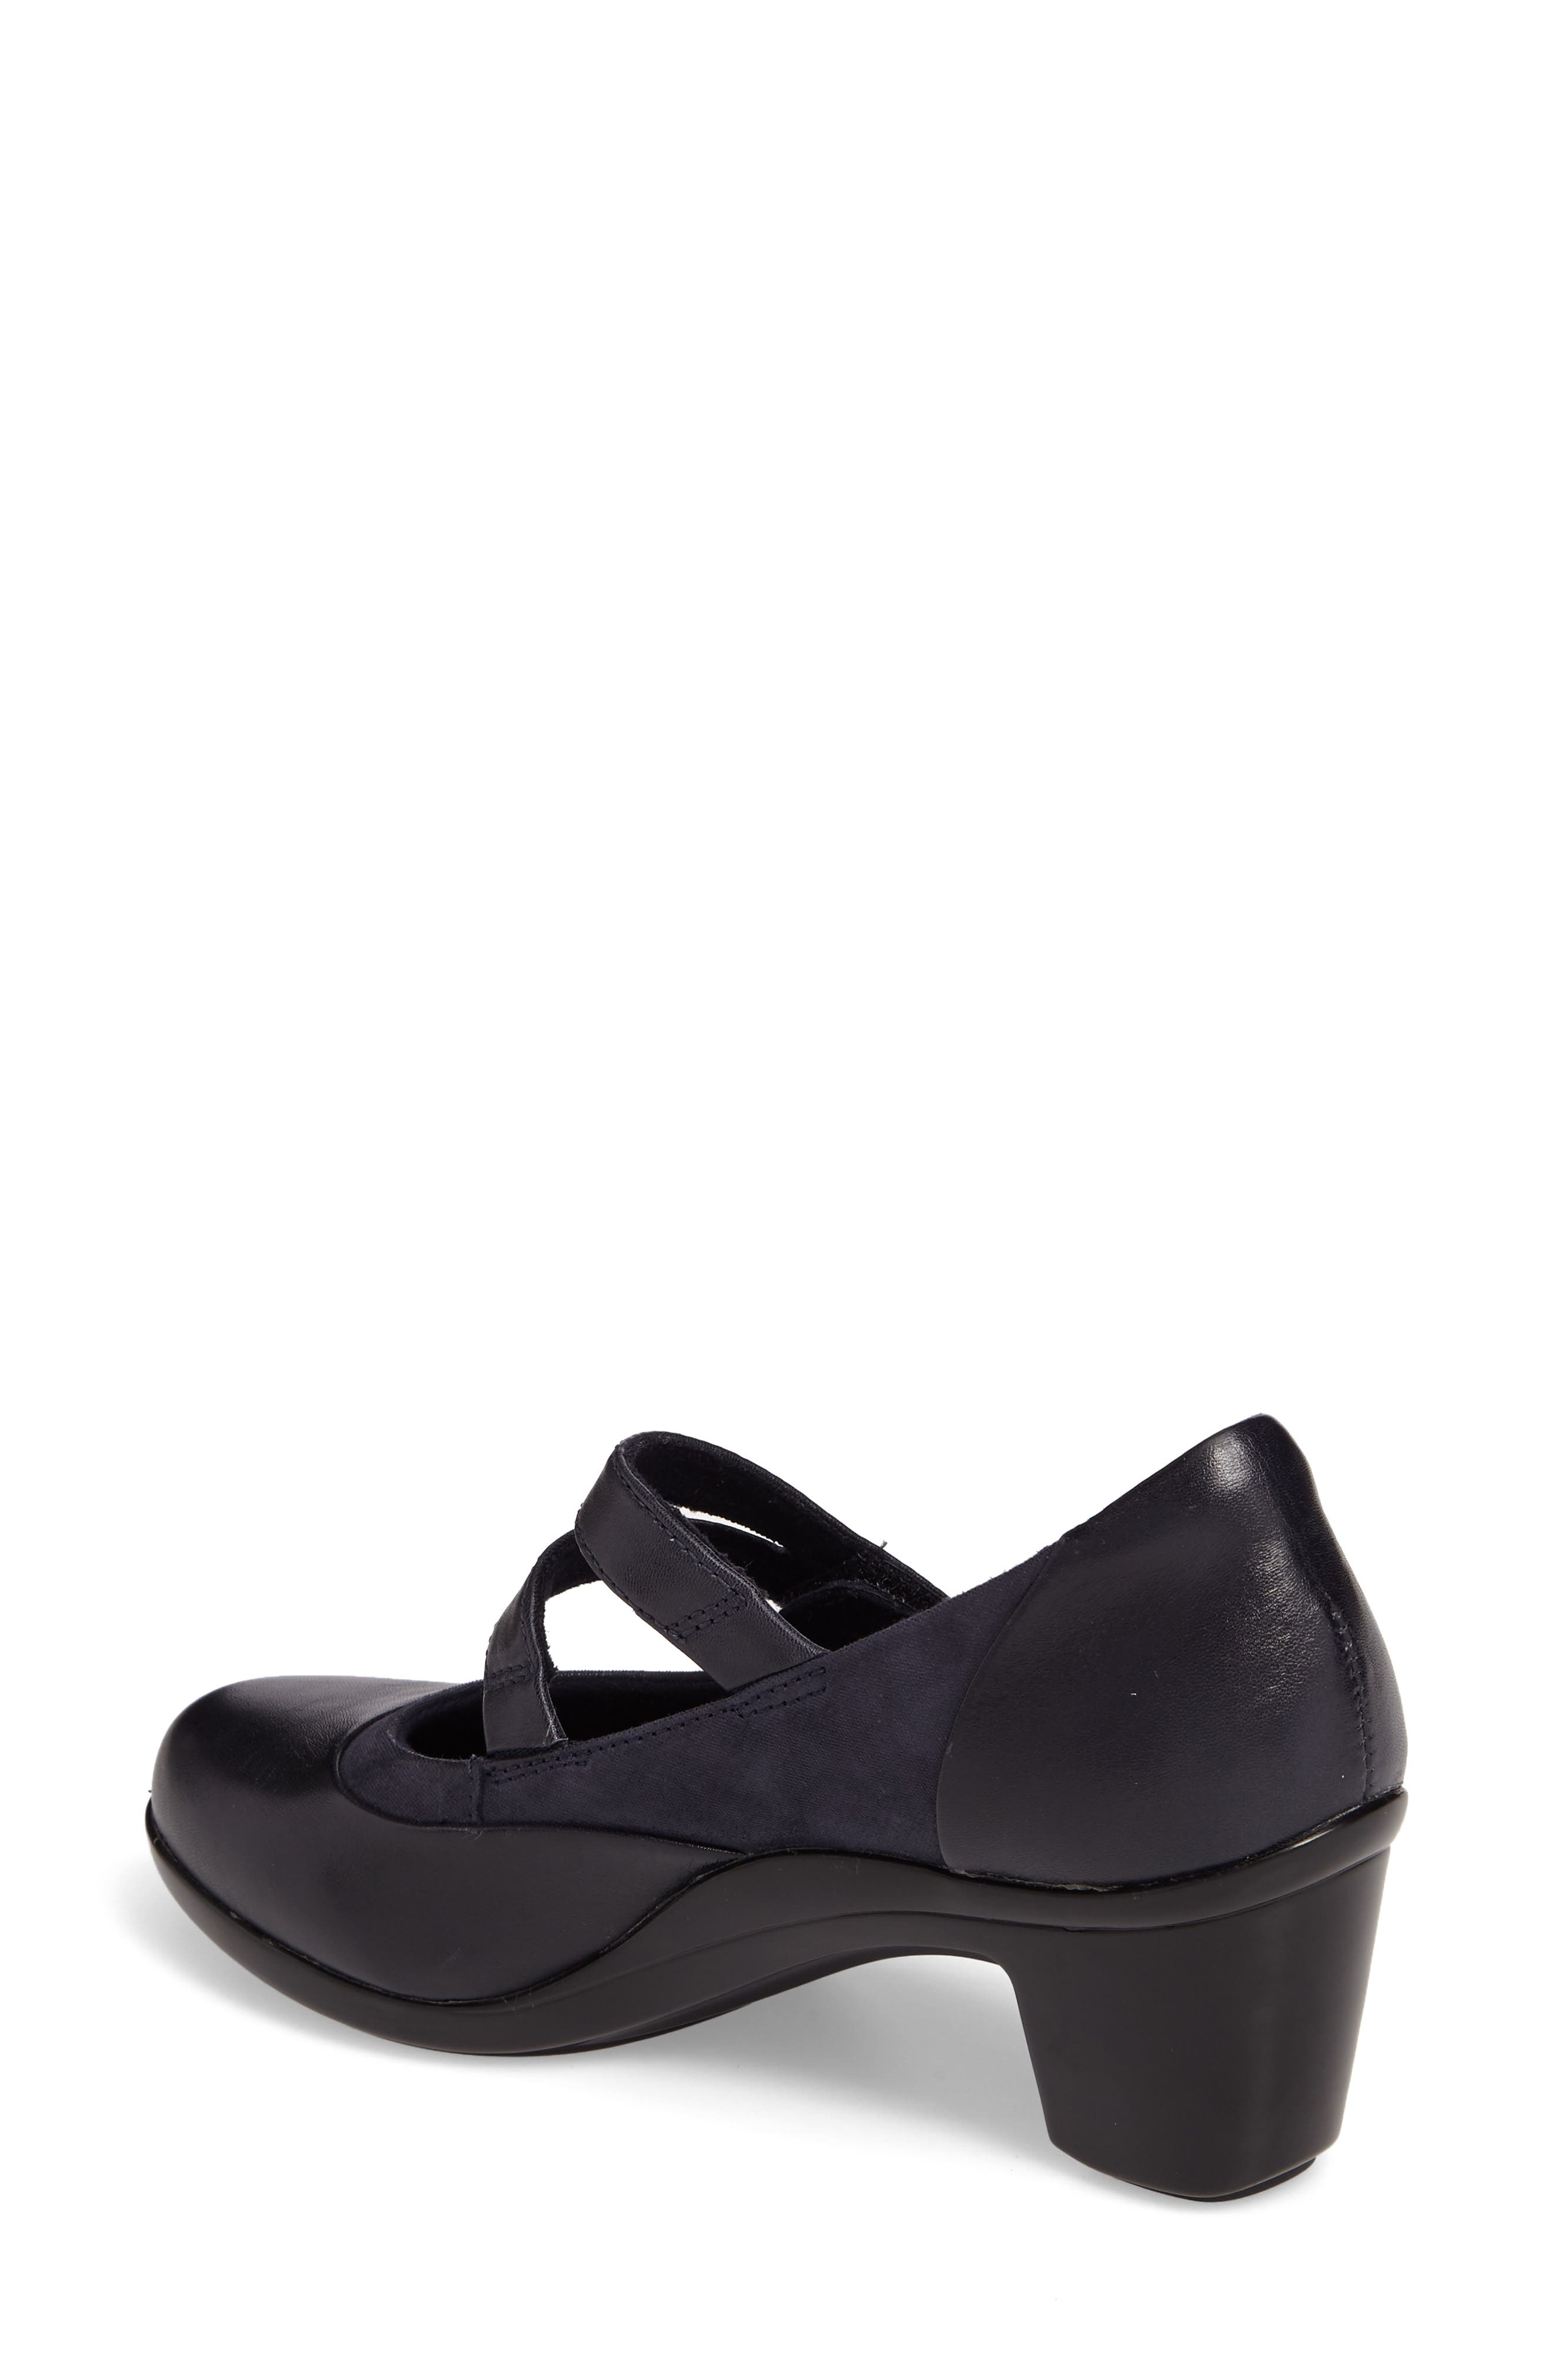 Lexee Mary Jane Pump,                             Alternate thumbnail 2, color,                             Navy Leather